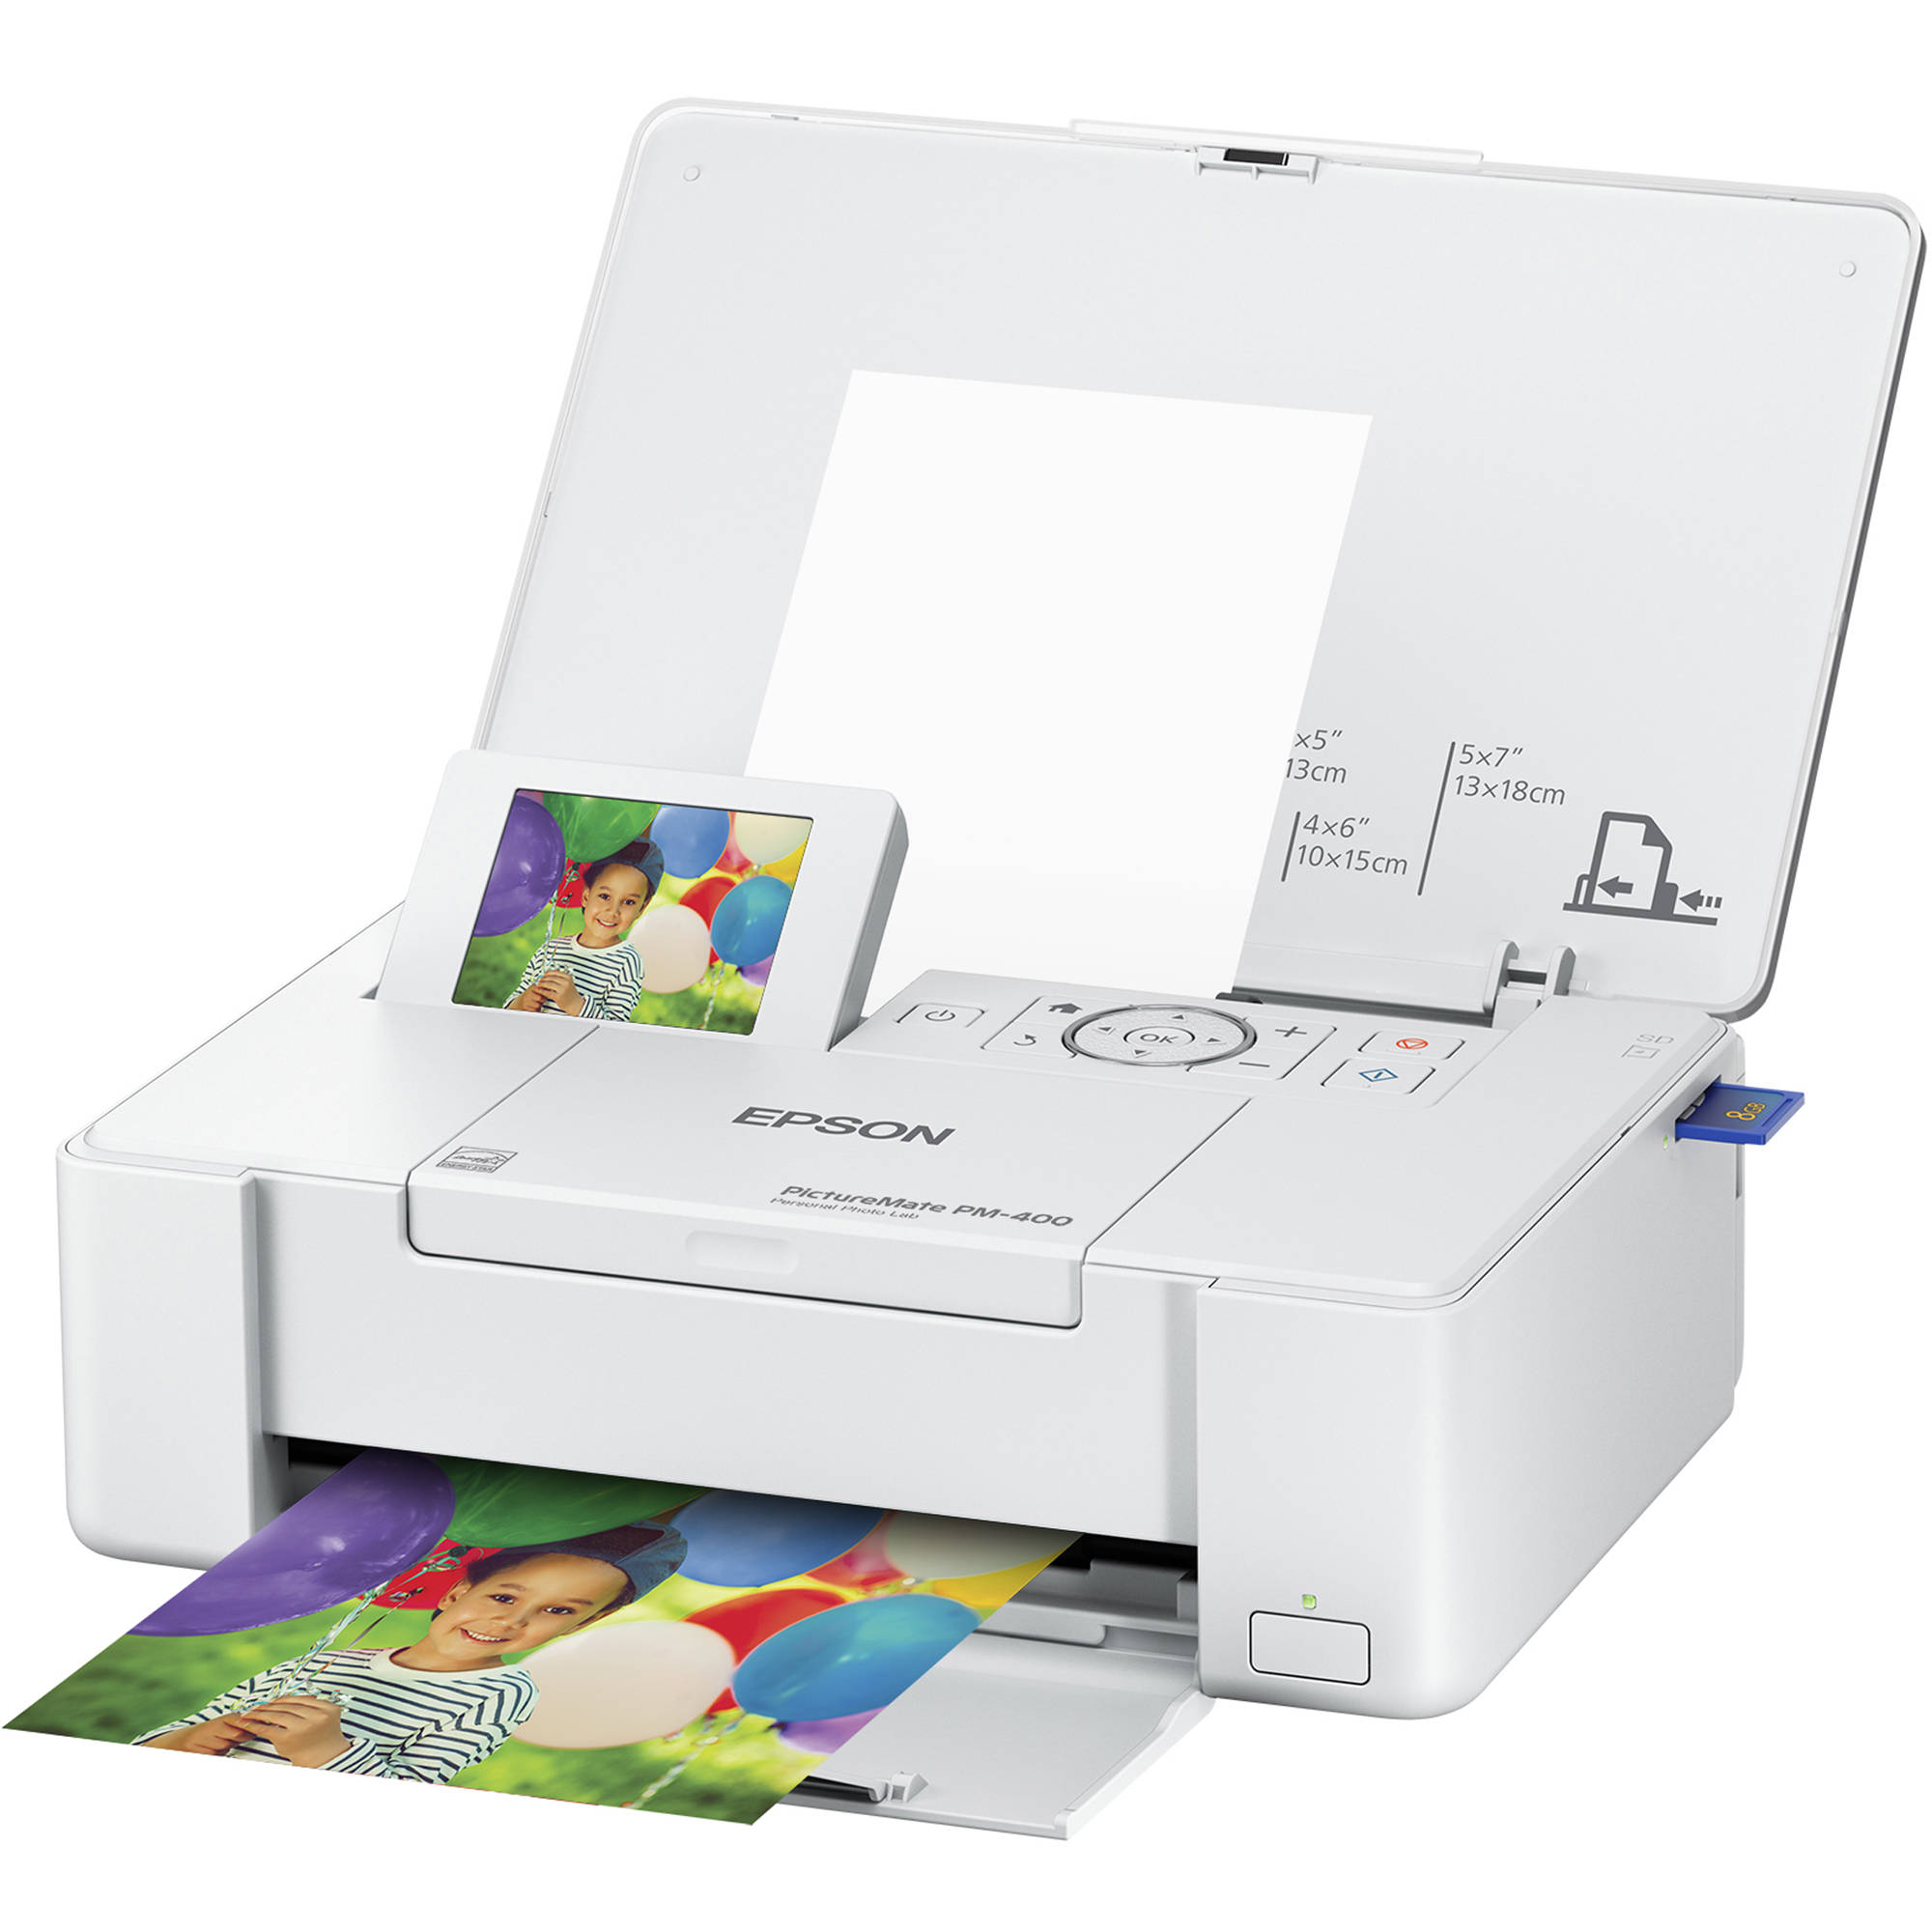 Epson Picturemate Pm 400 Personal Photo Lab C11ce84201 Bh Photo